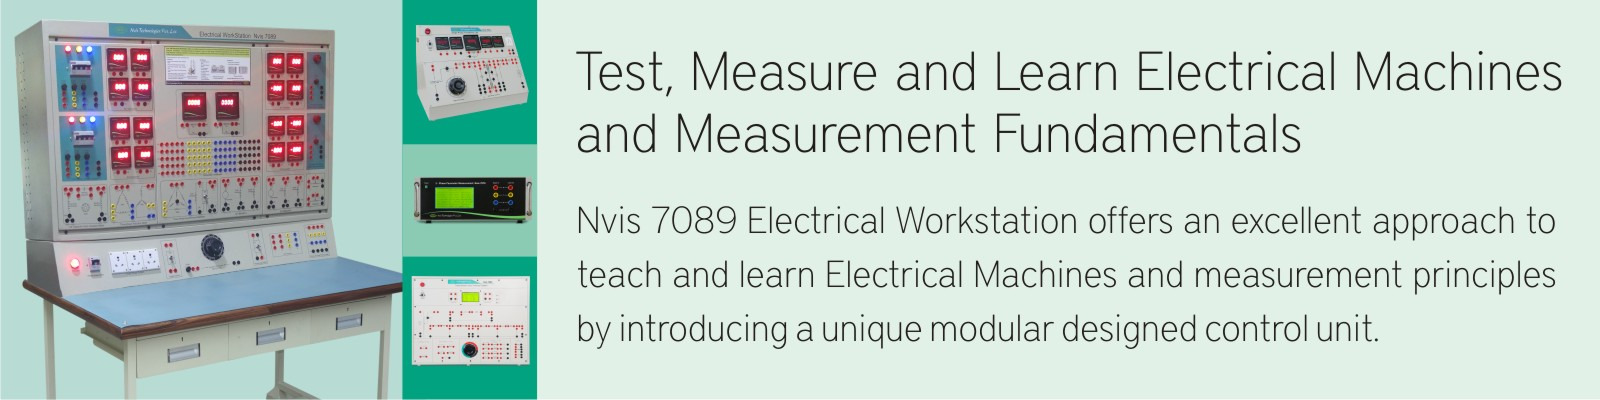 Electrical Machines and Measurement Fundamentals